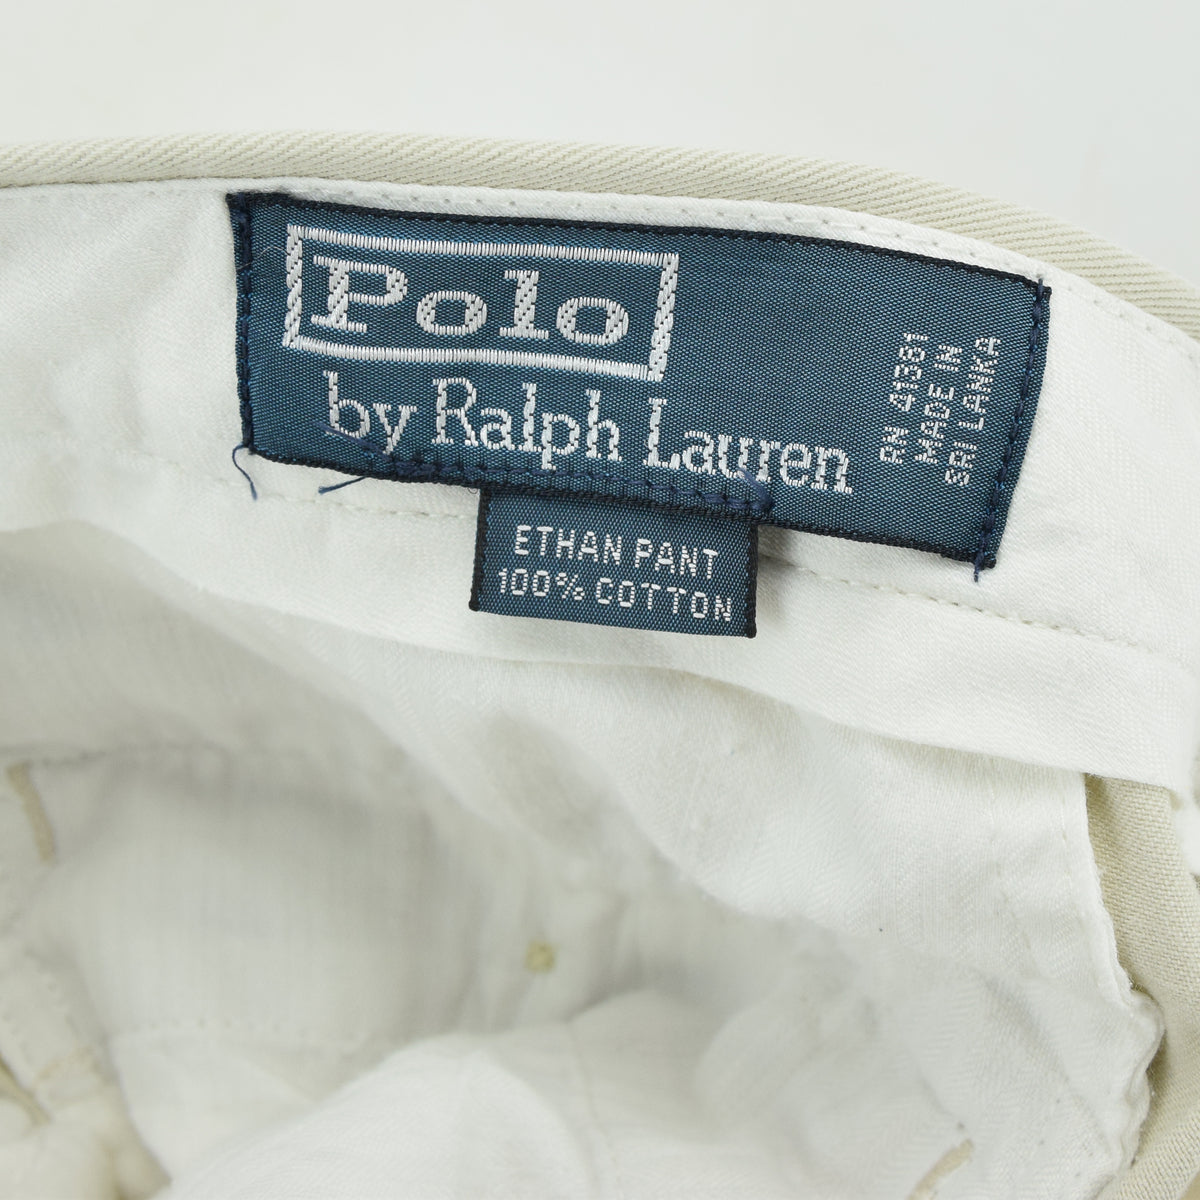 Vintage Ralph Lauren Polo Ethan Pant Chinos Pleated Front Trousers 32 W 28 L label